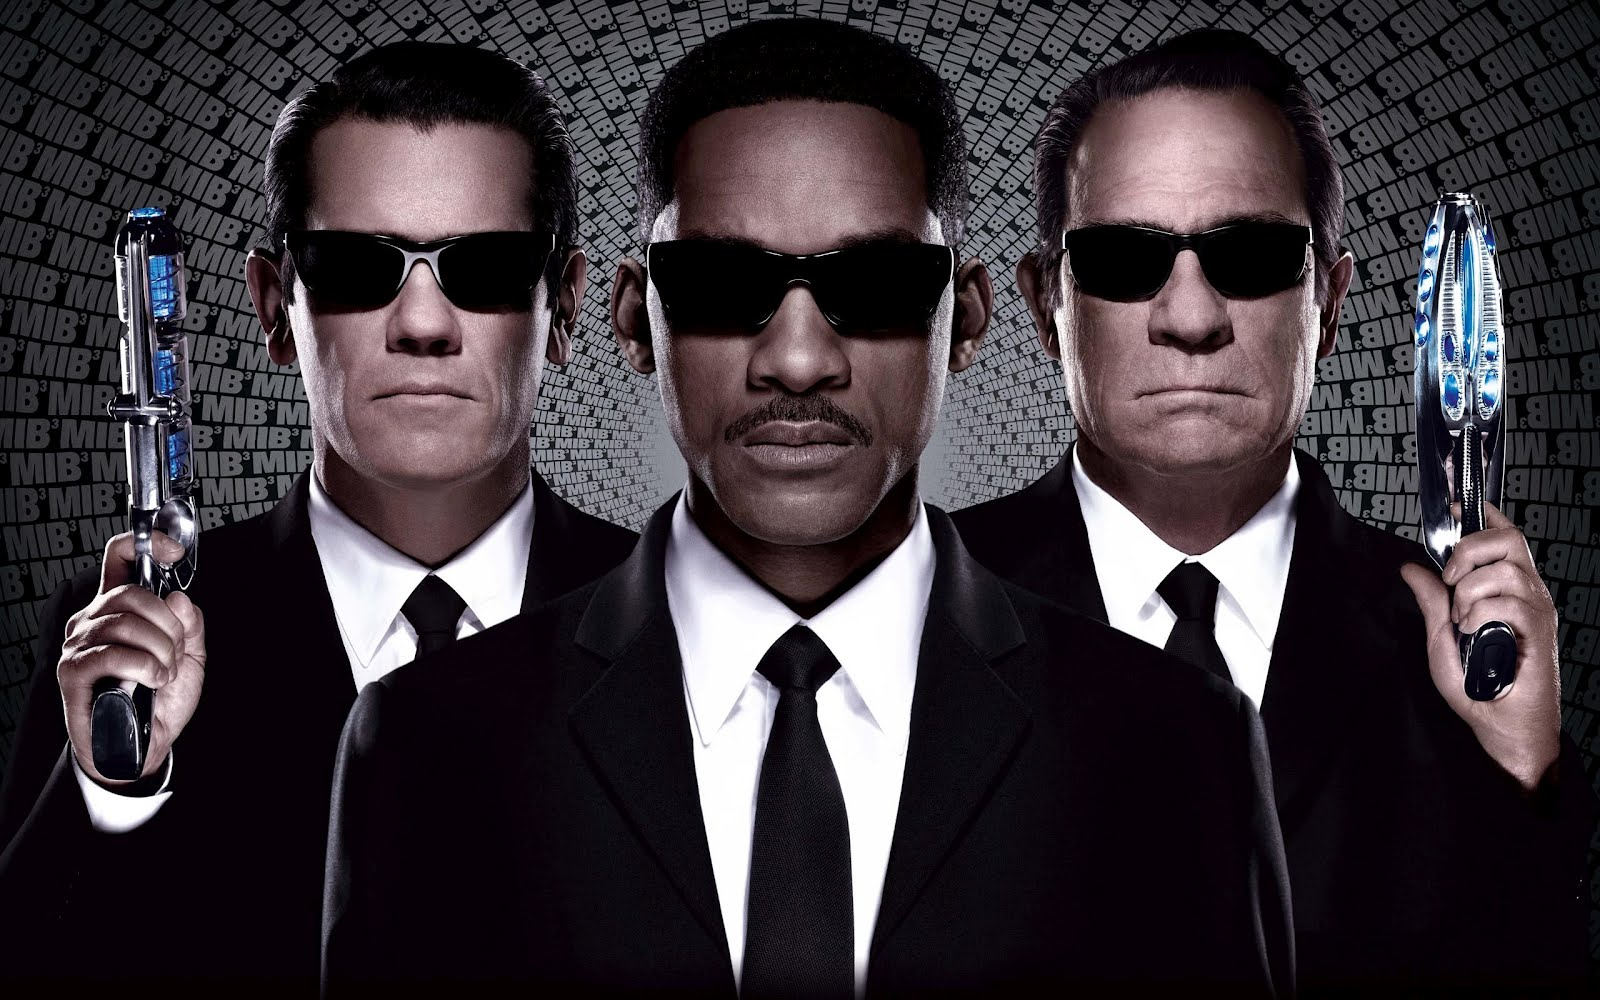 The Lions Share The Watcher Men In Black 3